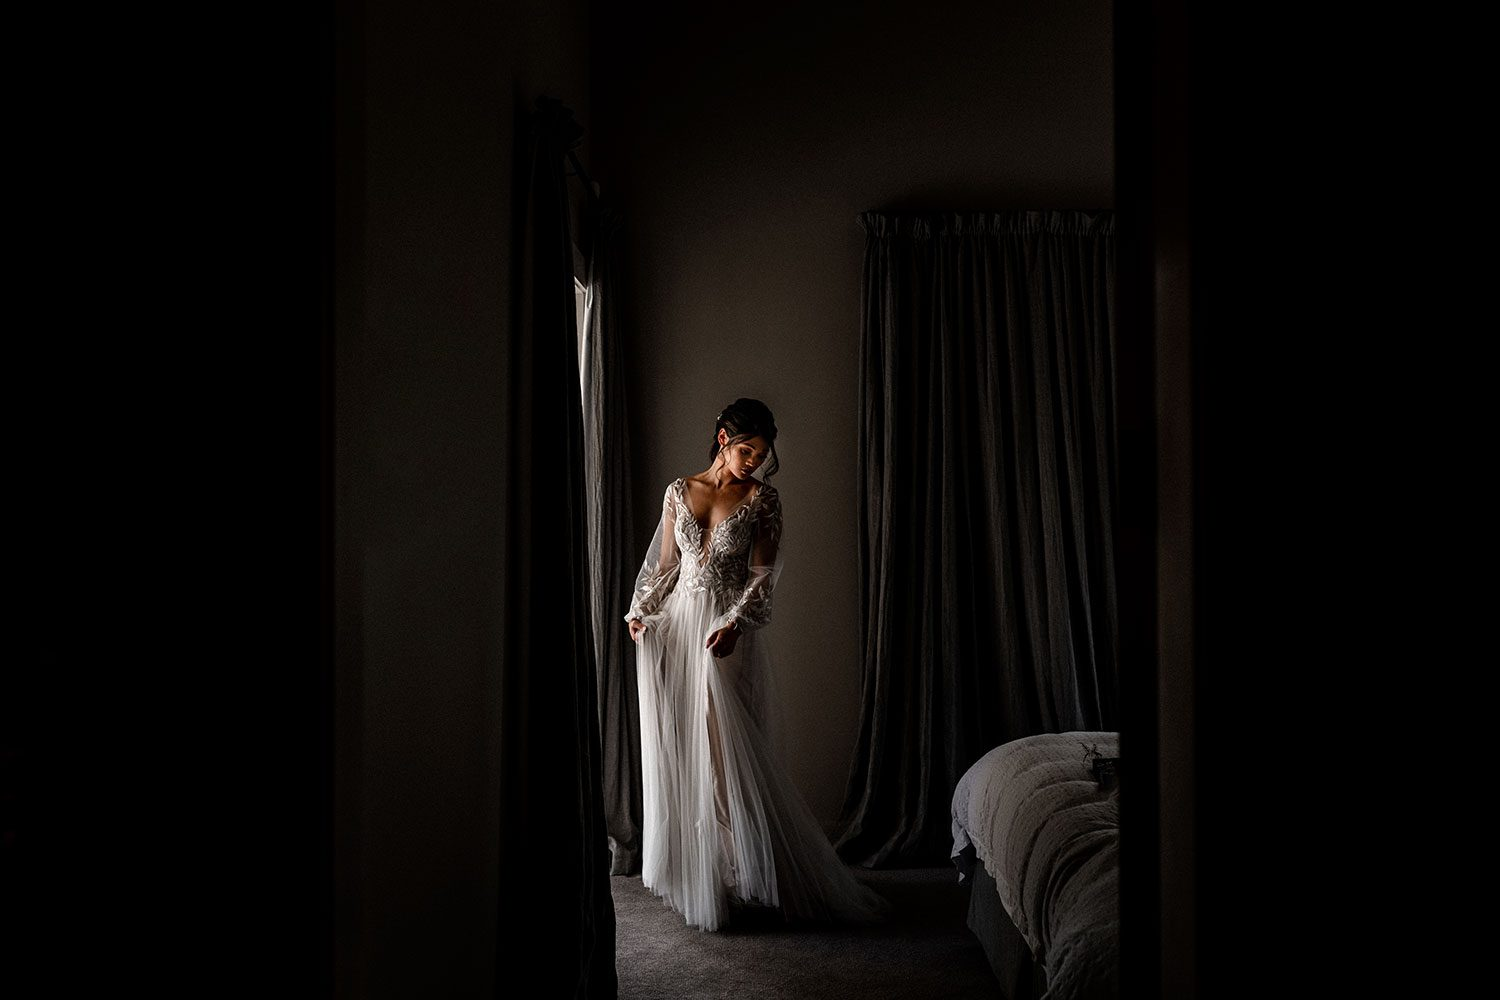 Bride wearing bespoke designer wedding dress by Vinka Bridal Boutique NZ, adorned with delicate applique lace and puffed sleeves - in bedroom